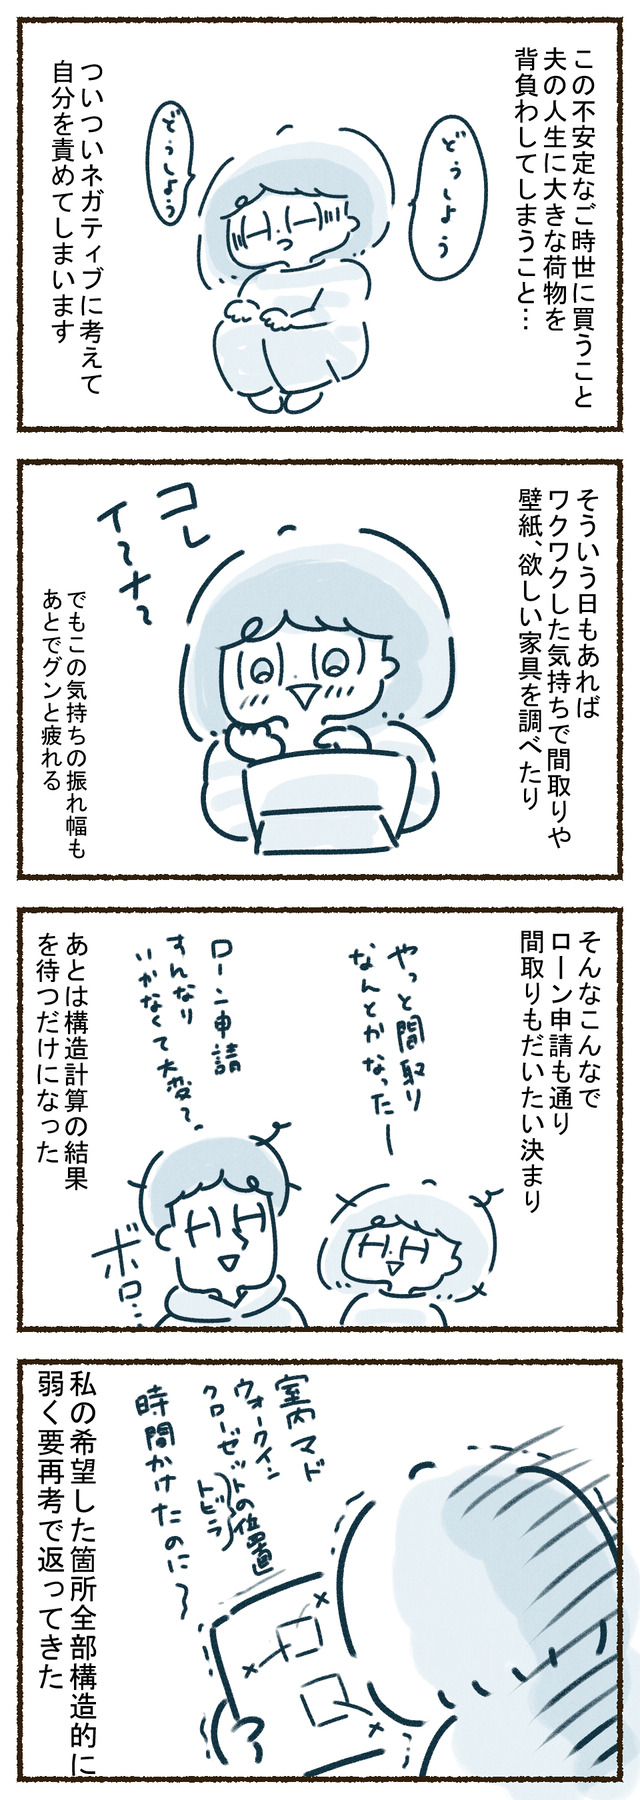 ouchi02